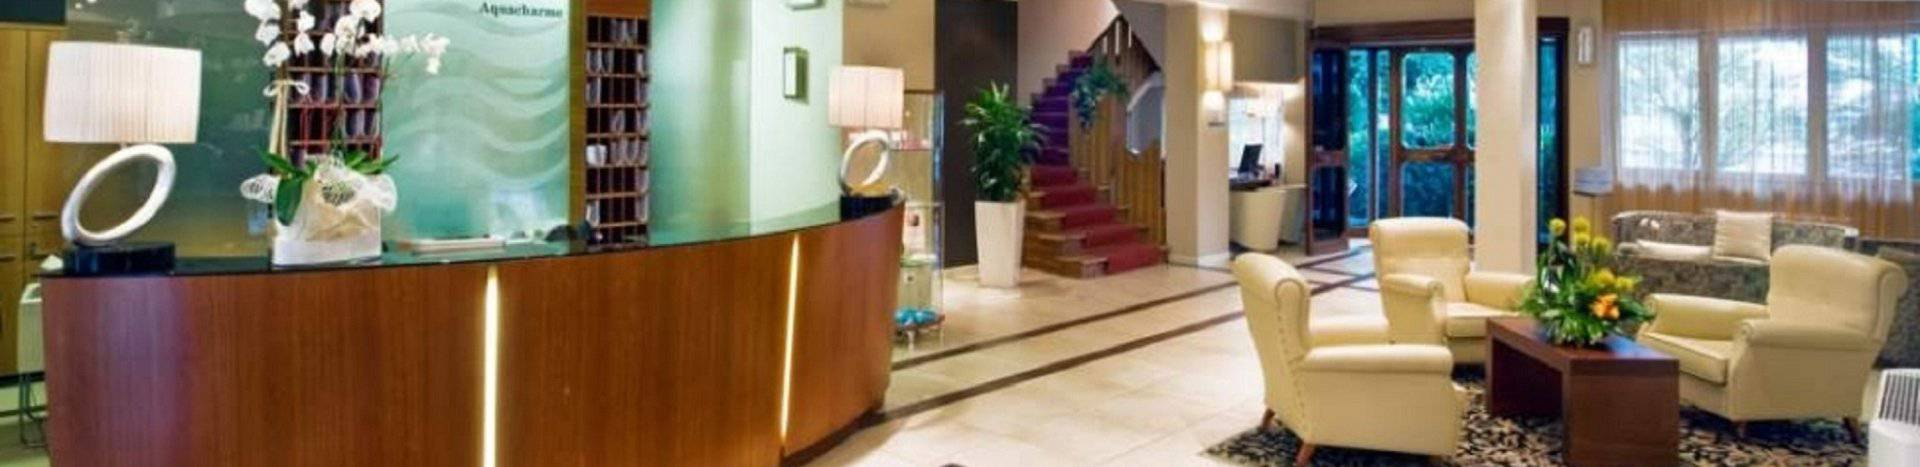 Space Hotels - BOARIO TERME -